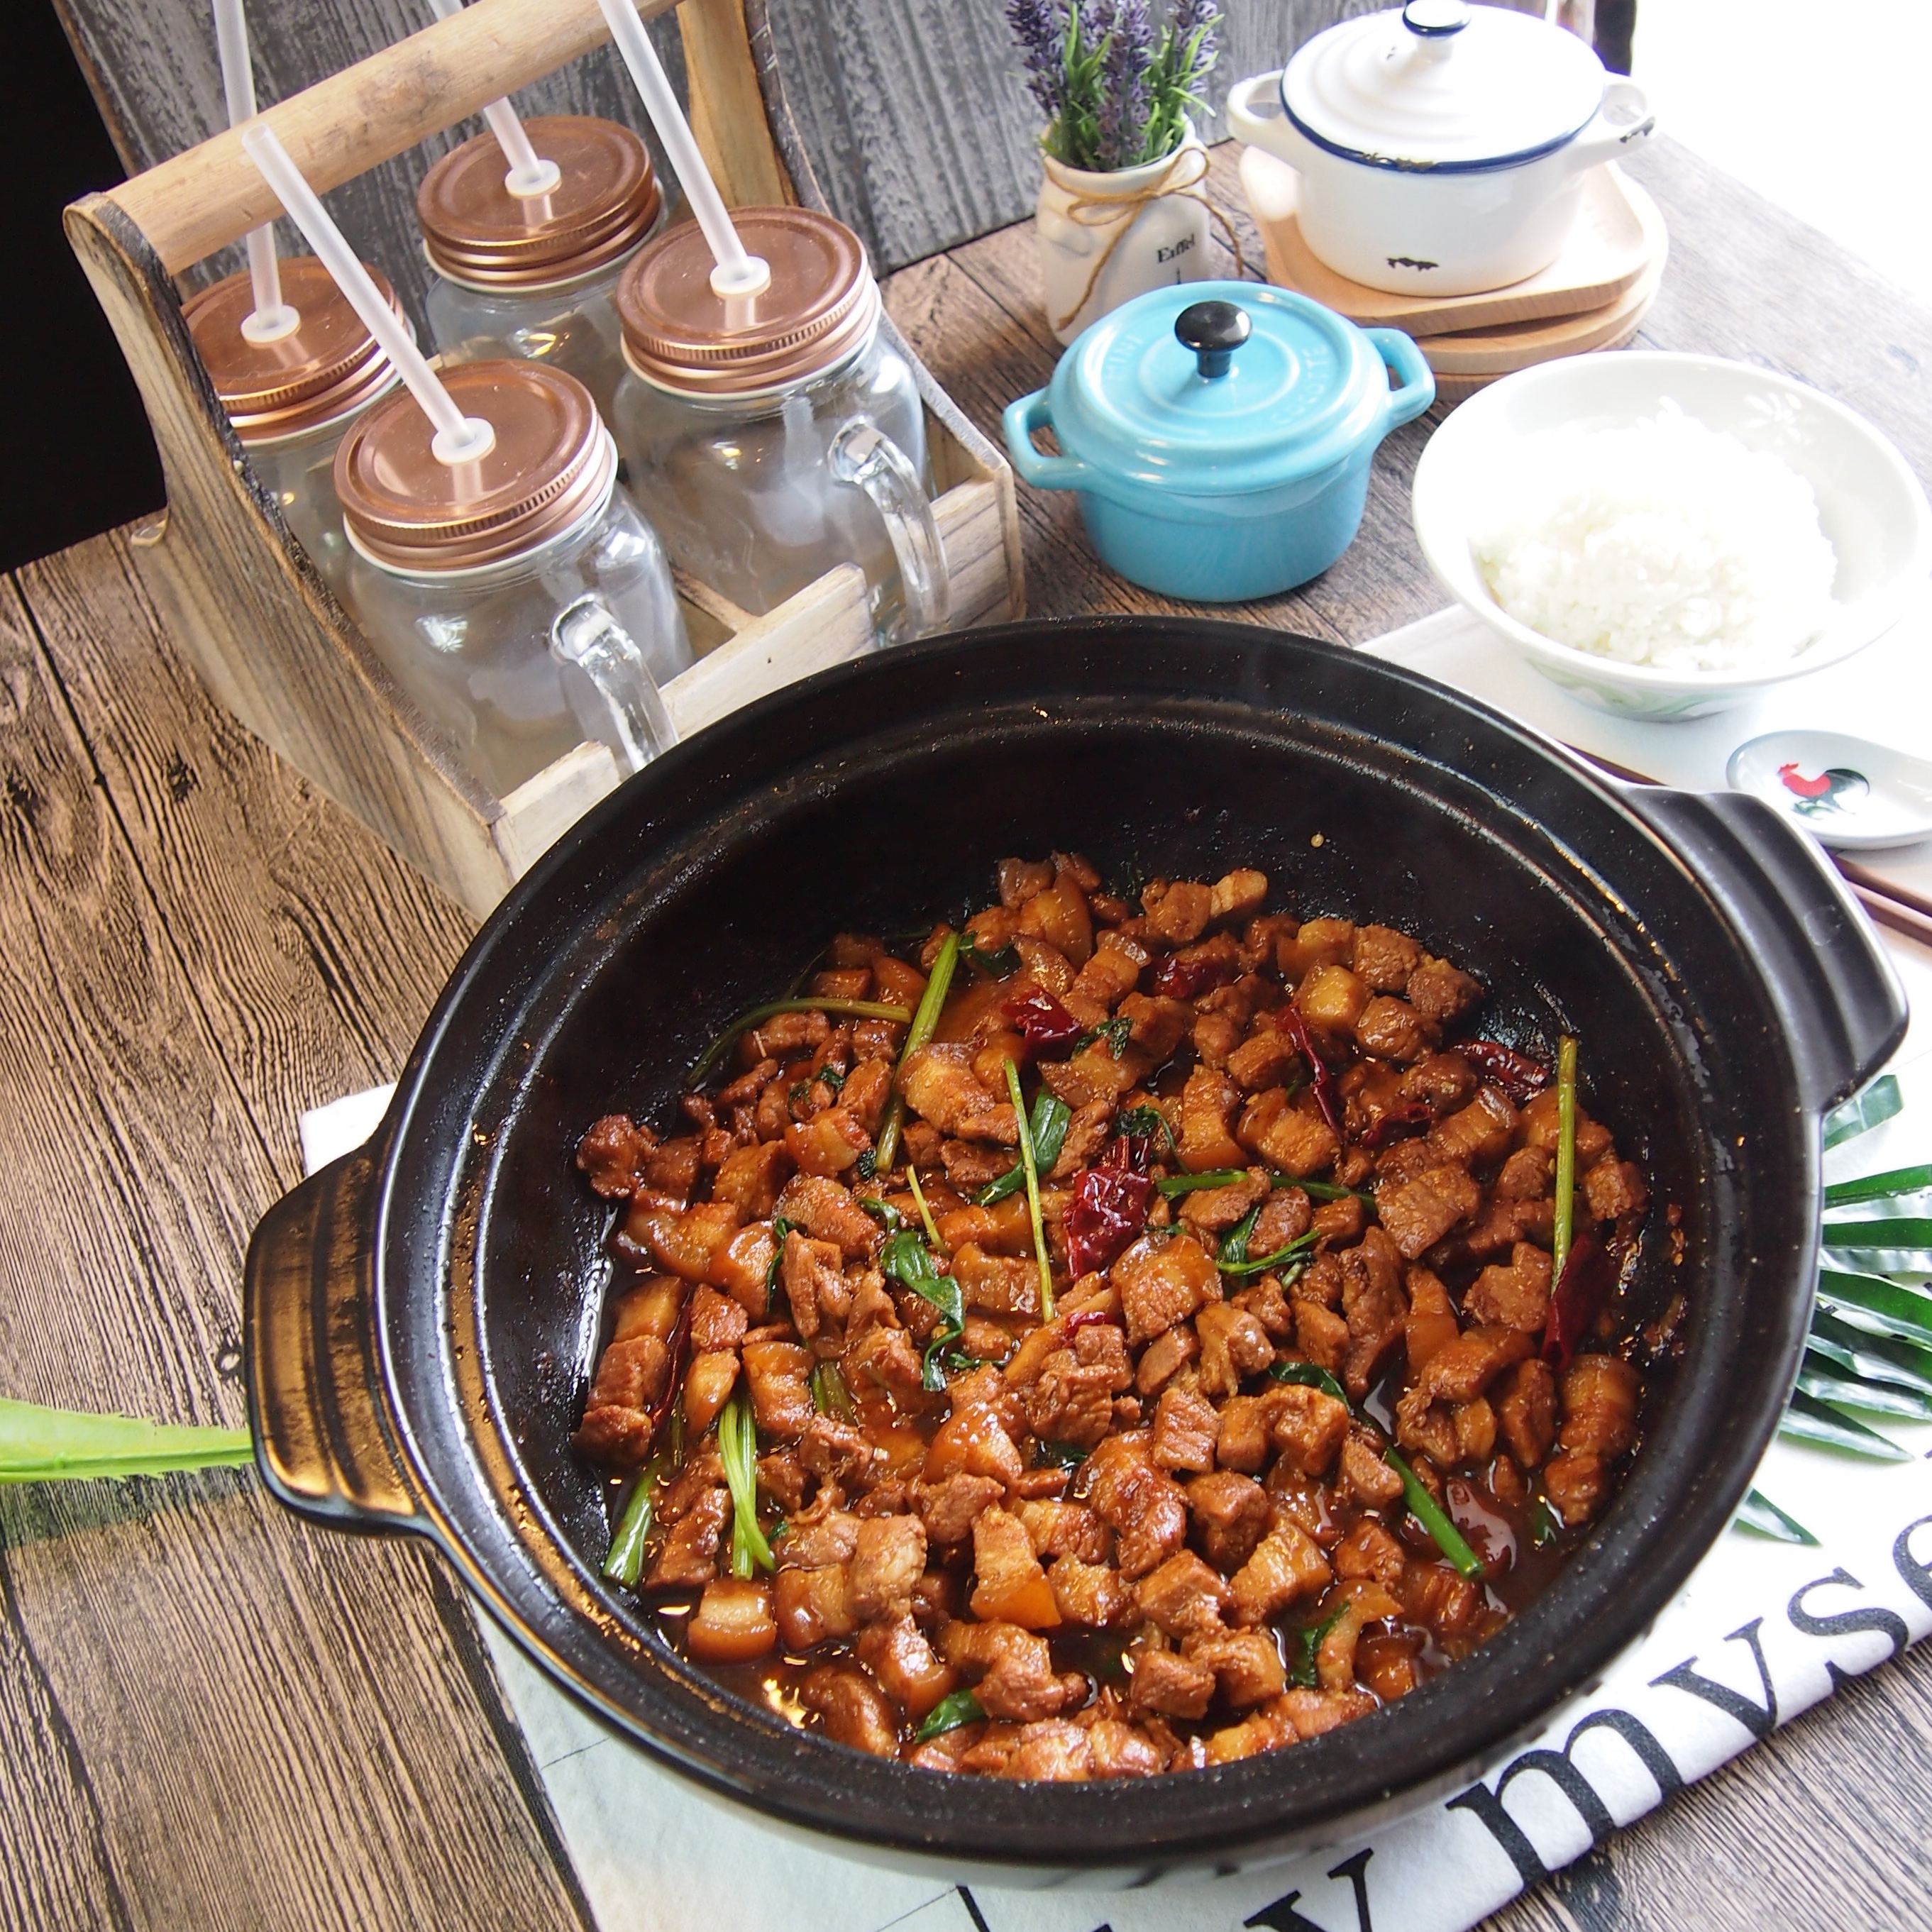 Super Good Chinese Recipe: Claypot Salted Fish w/ Pork Belly 咸鱼花腩煲